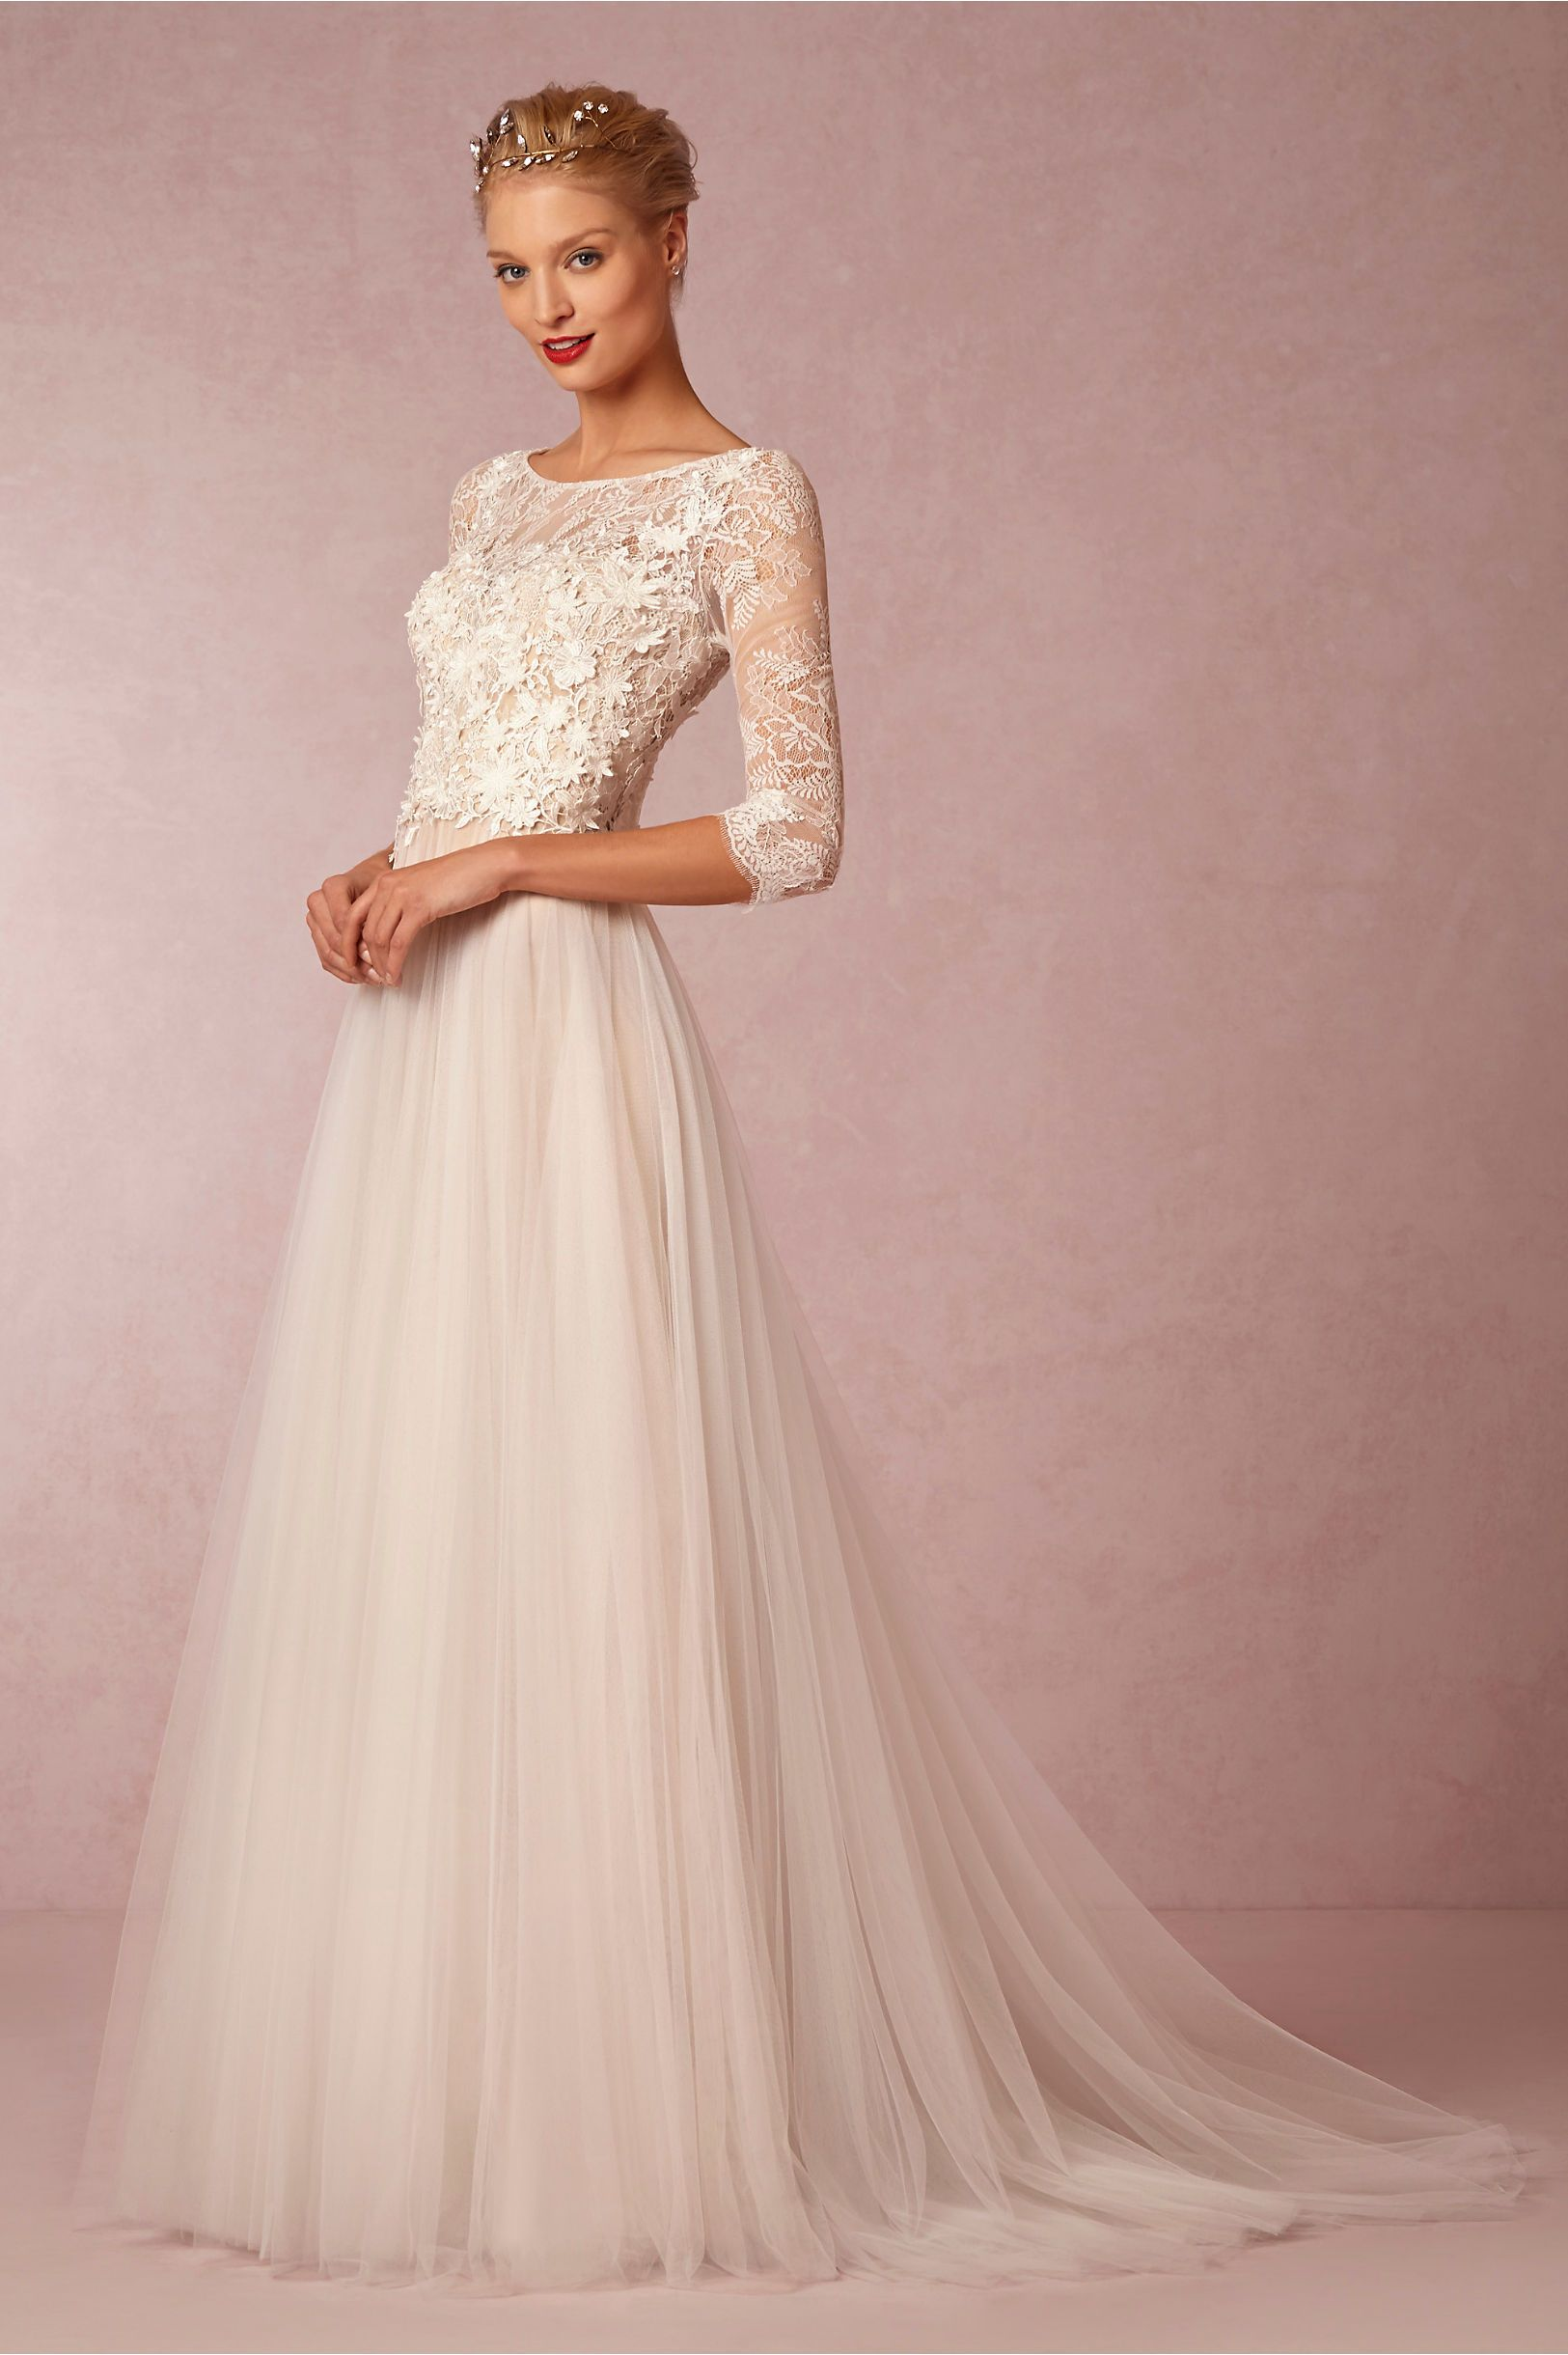 Gorgeous lace work on this dress -Amelie Gown in Bride Wedding ...